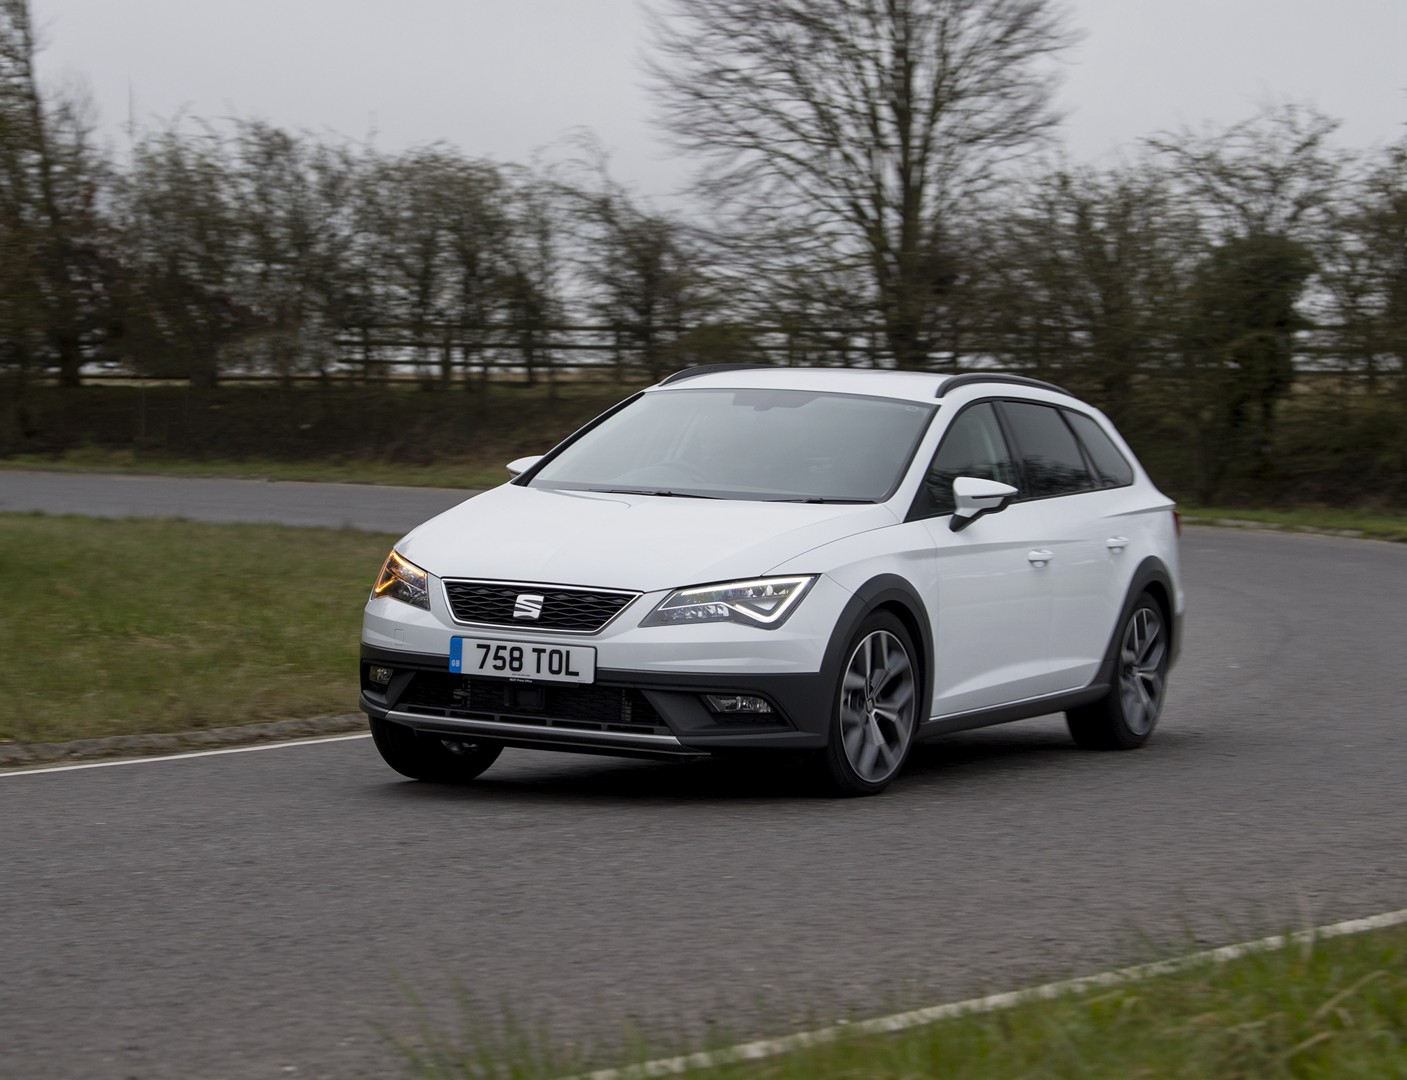 2017 seat leon x perience facelift detailed in new photos. Black Bedroom Furniture Sets. Home Design Ideas